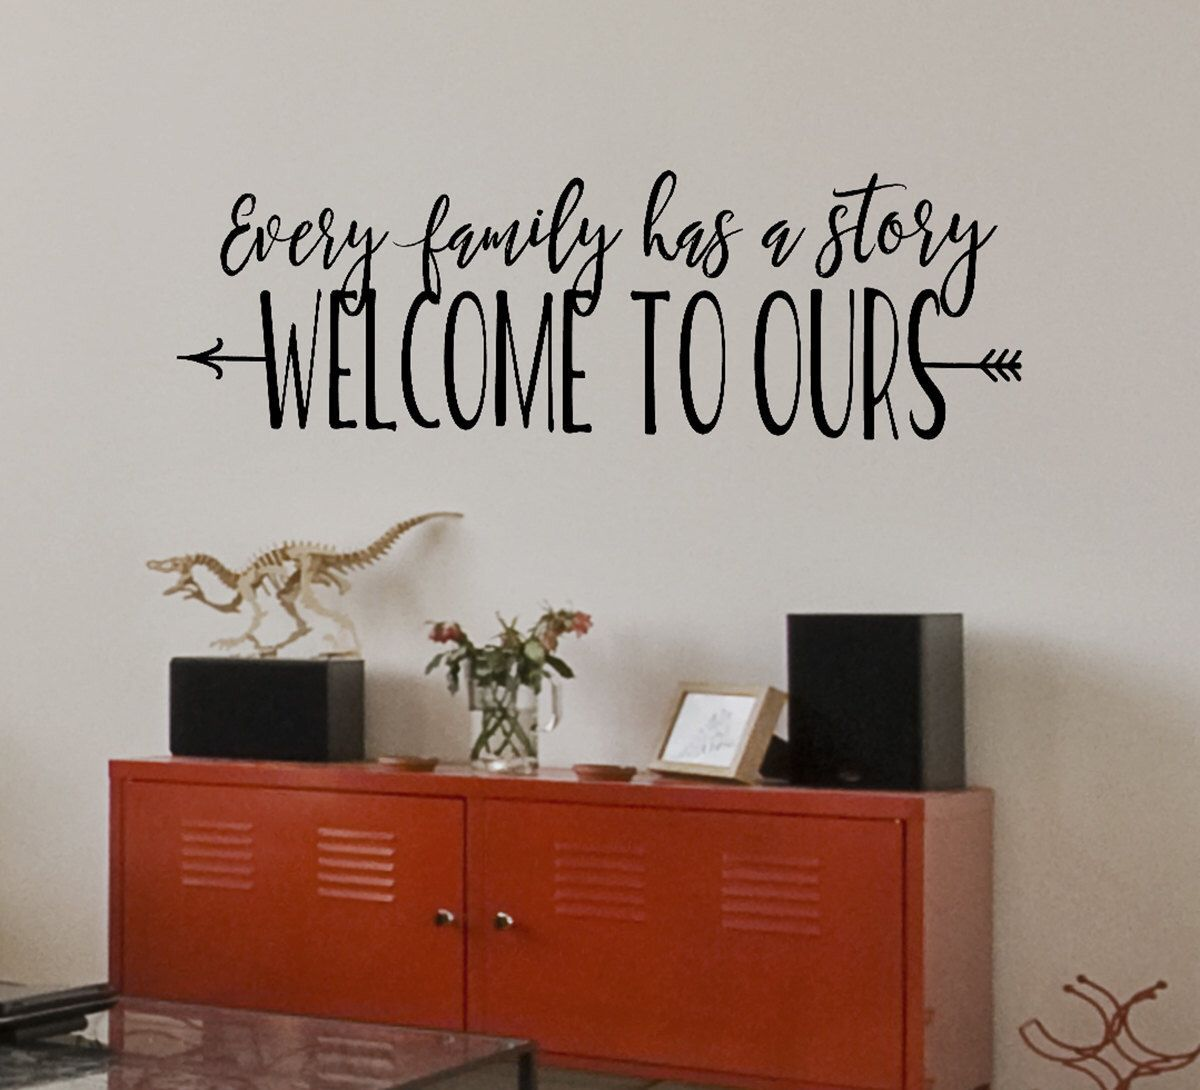 Foyer Colors Quotes : Every family has a story welcome to ours wall